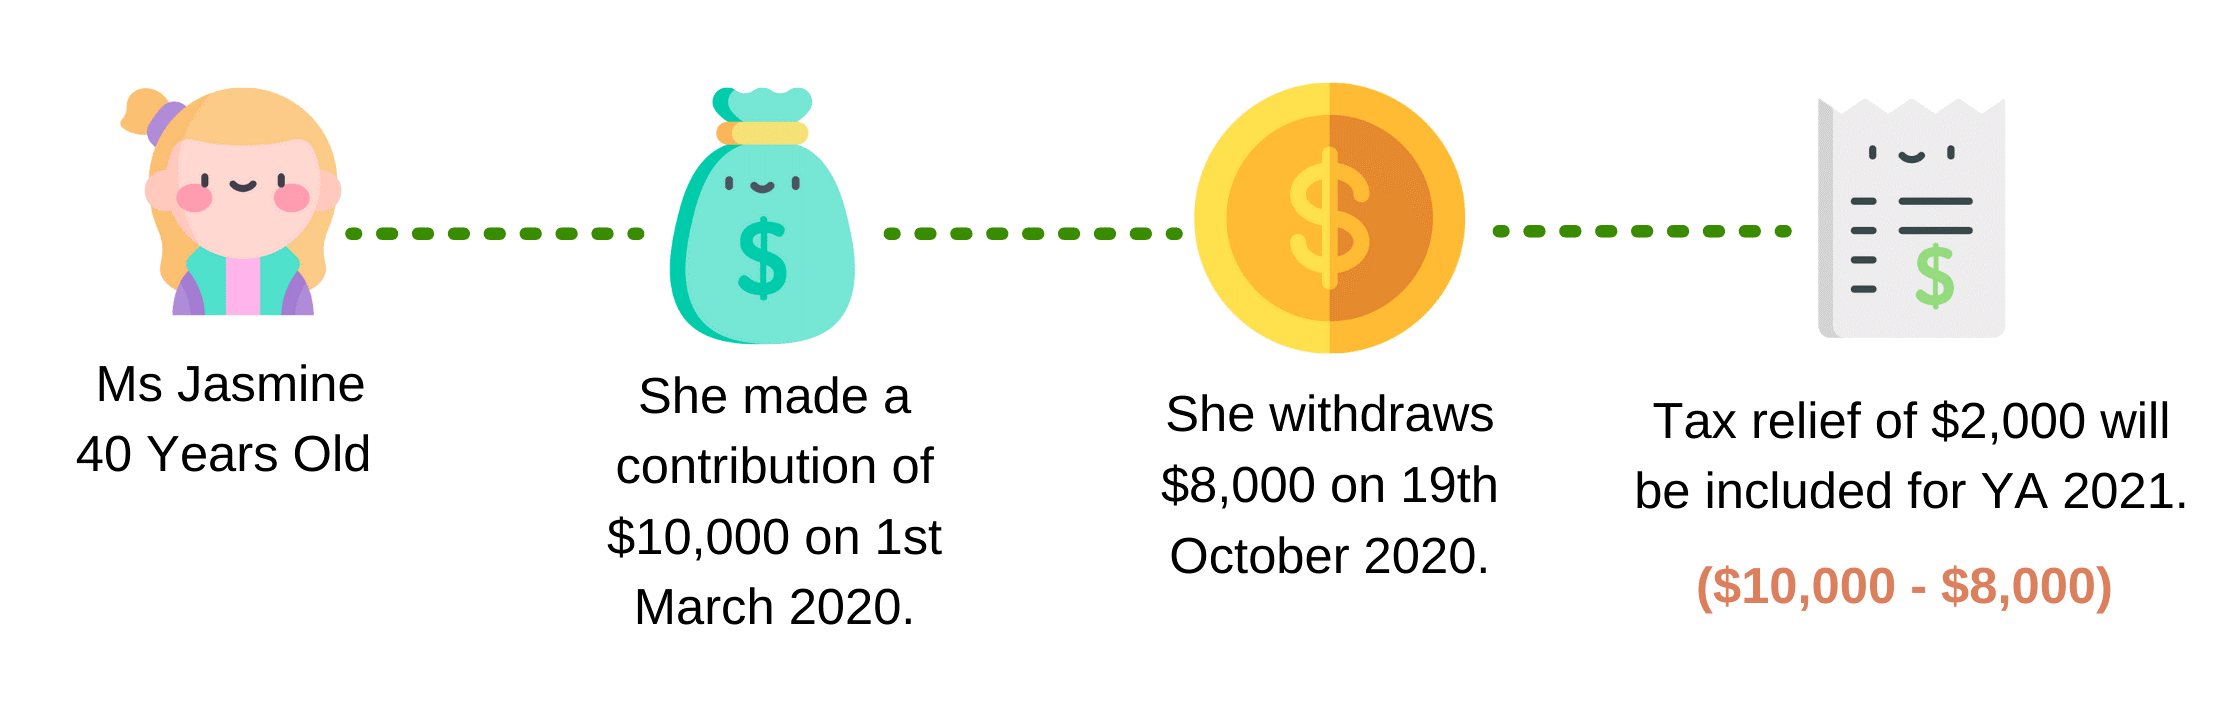 Contribution made before withdrawal in the same year, where withdrawal is less than the amount contributed